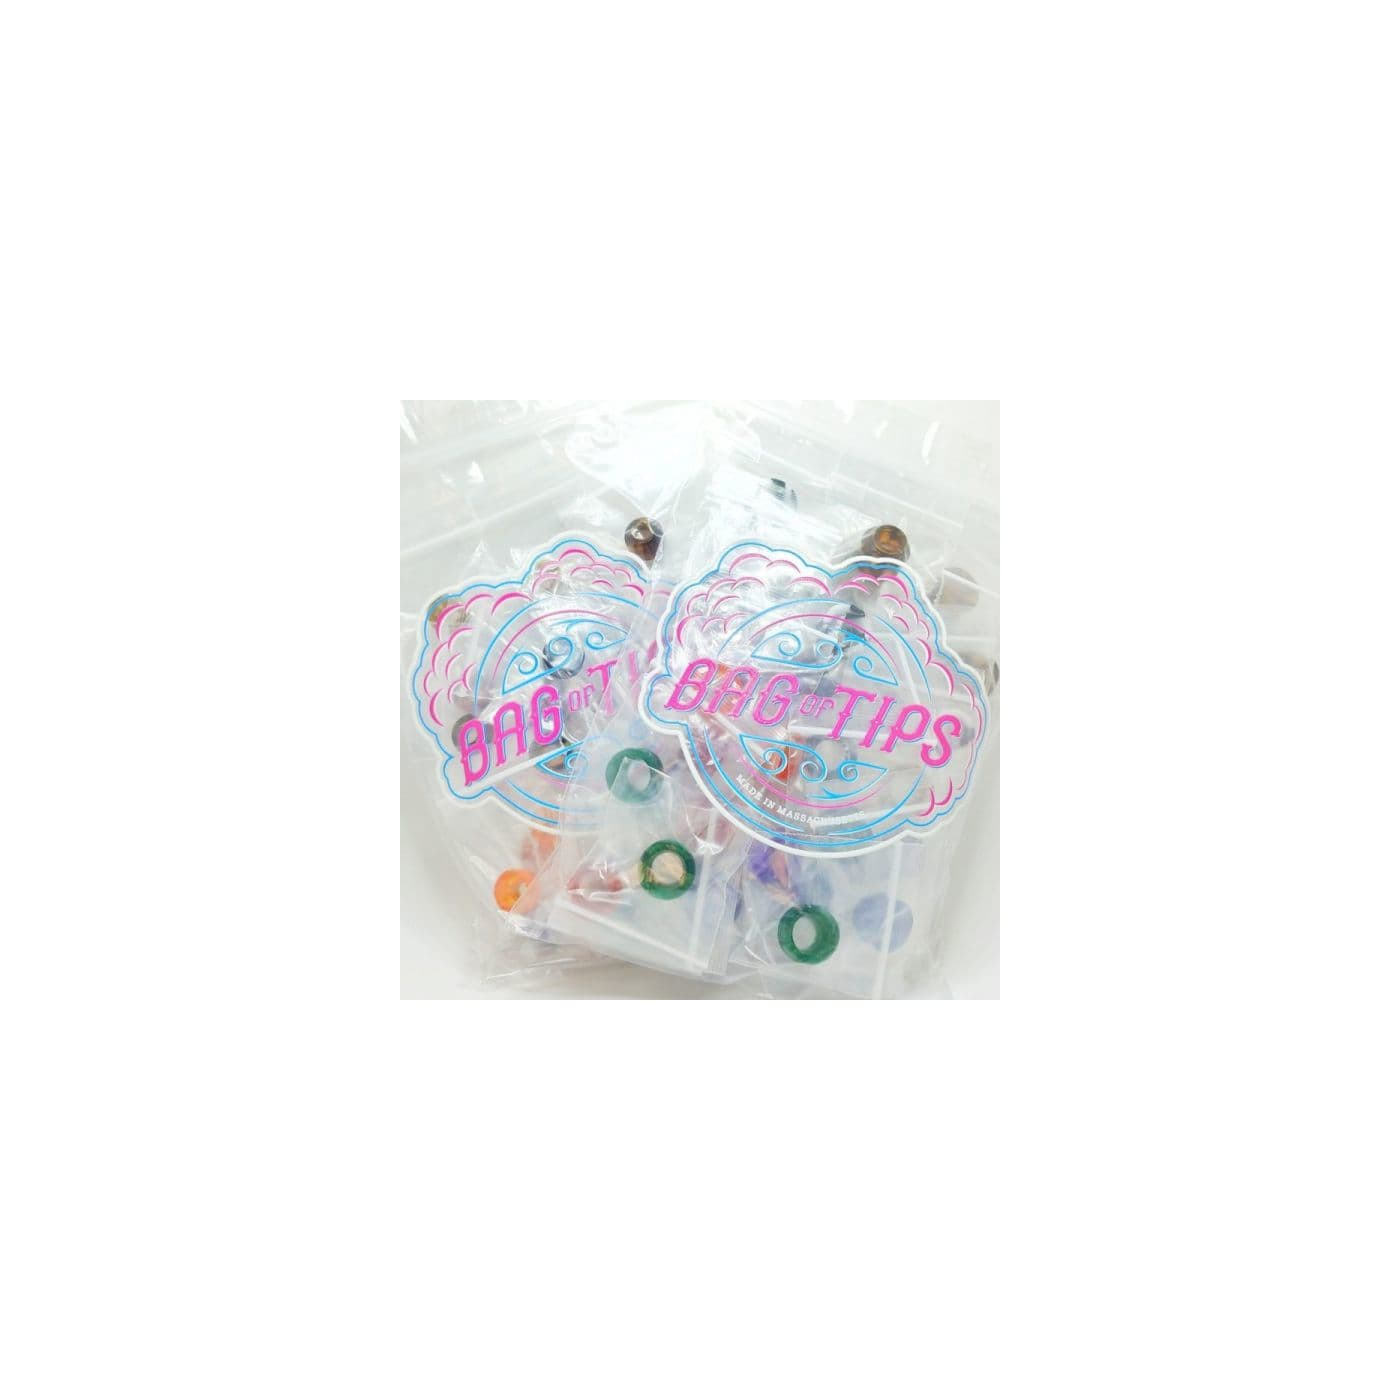 Half Moon Mods Refill Bag of Tips - 60 pack